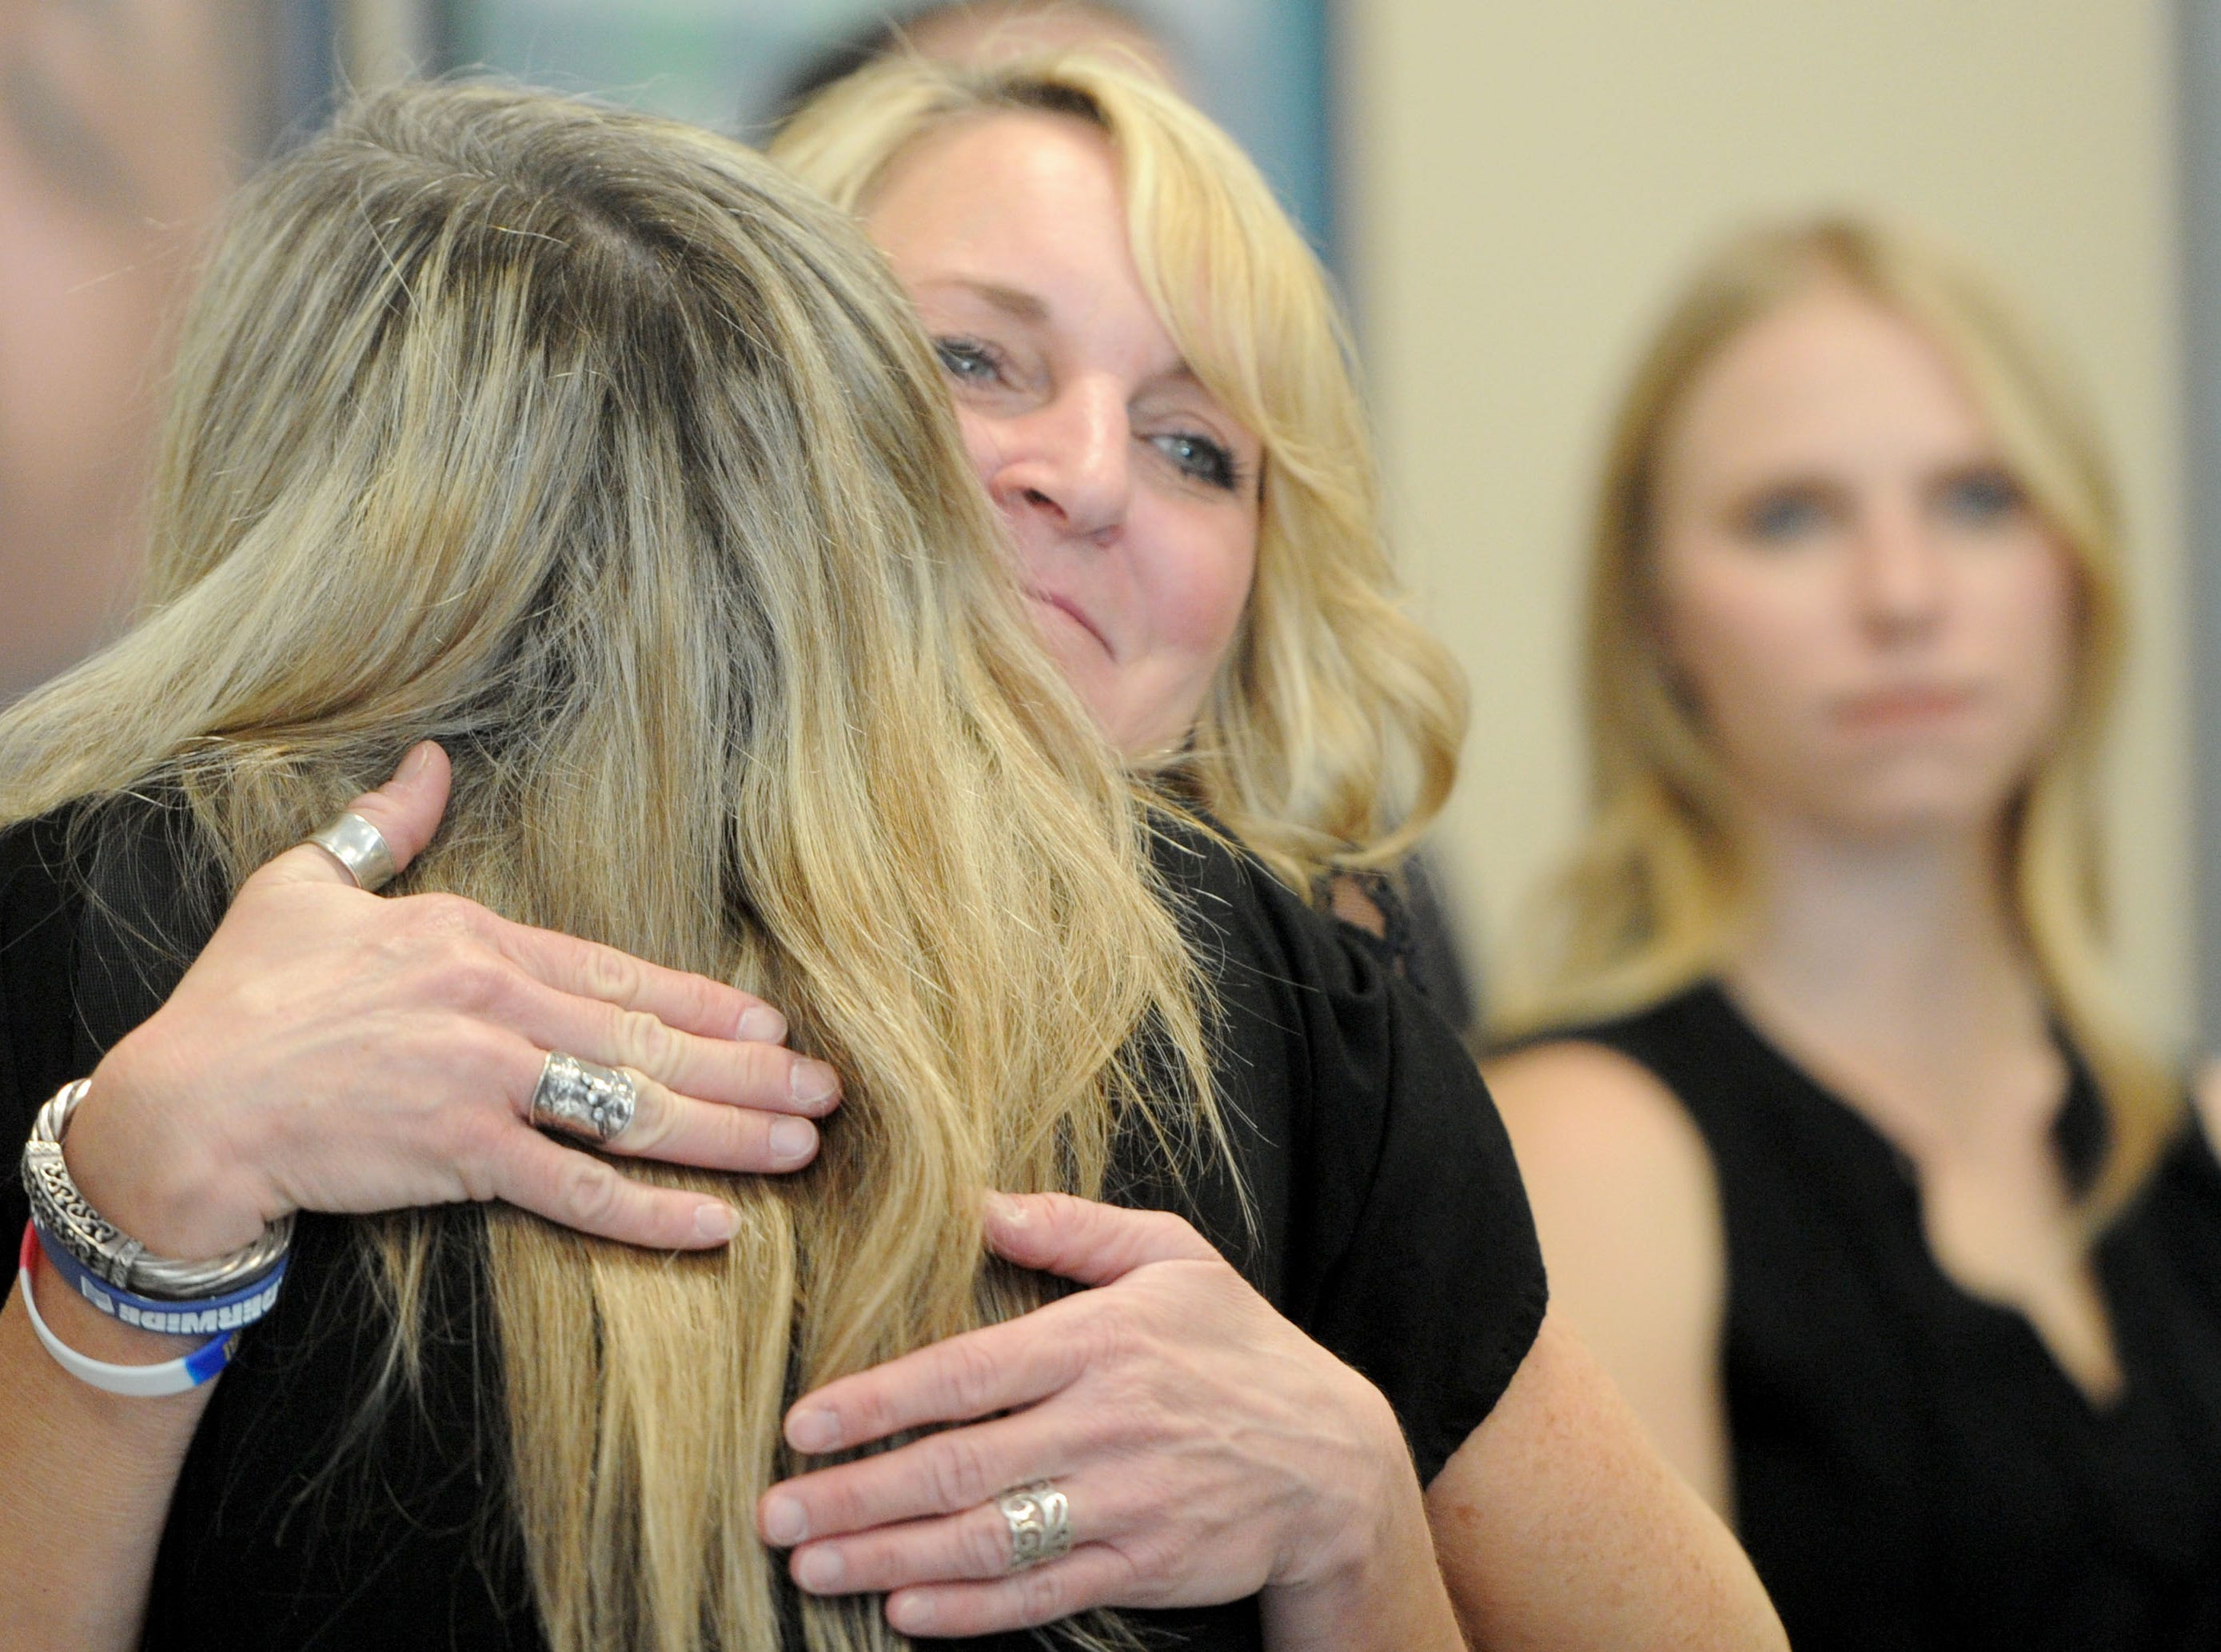 Kathy Dunham gets hugs from friends and family members at the start of the memorial service for her son Jake Dunham, one of those killed the night of Nov. 7 at the Borderline Bar & Grill in Thousand Oaks